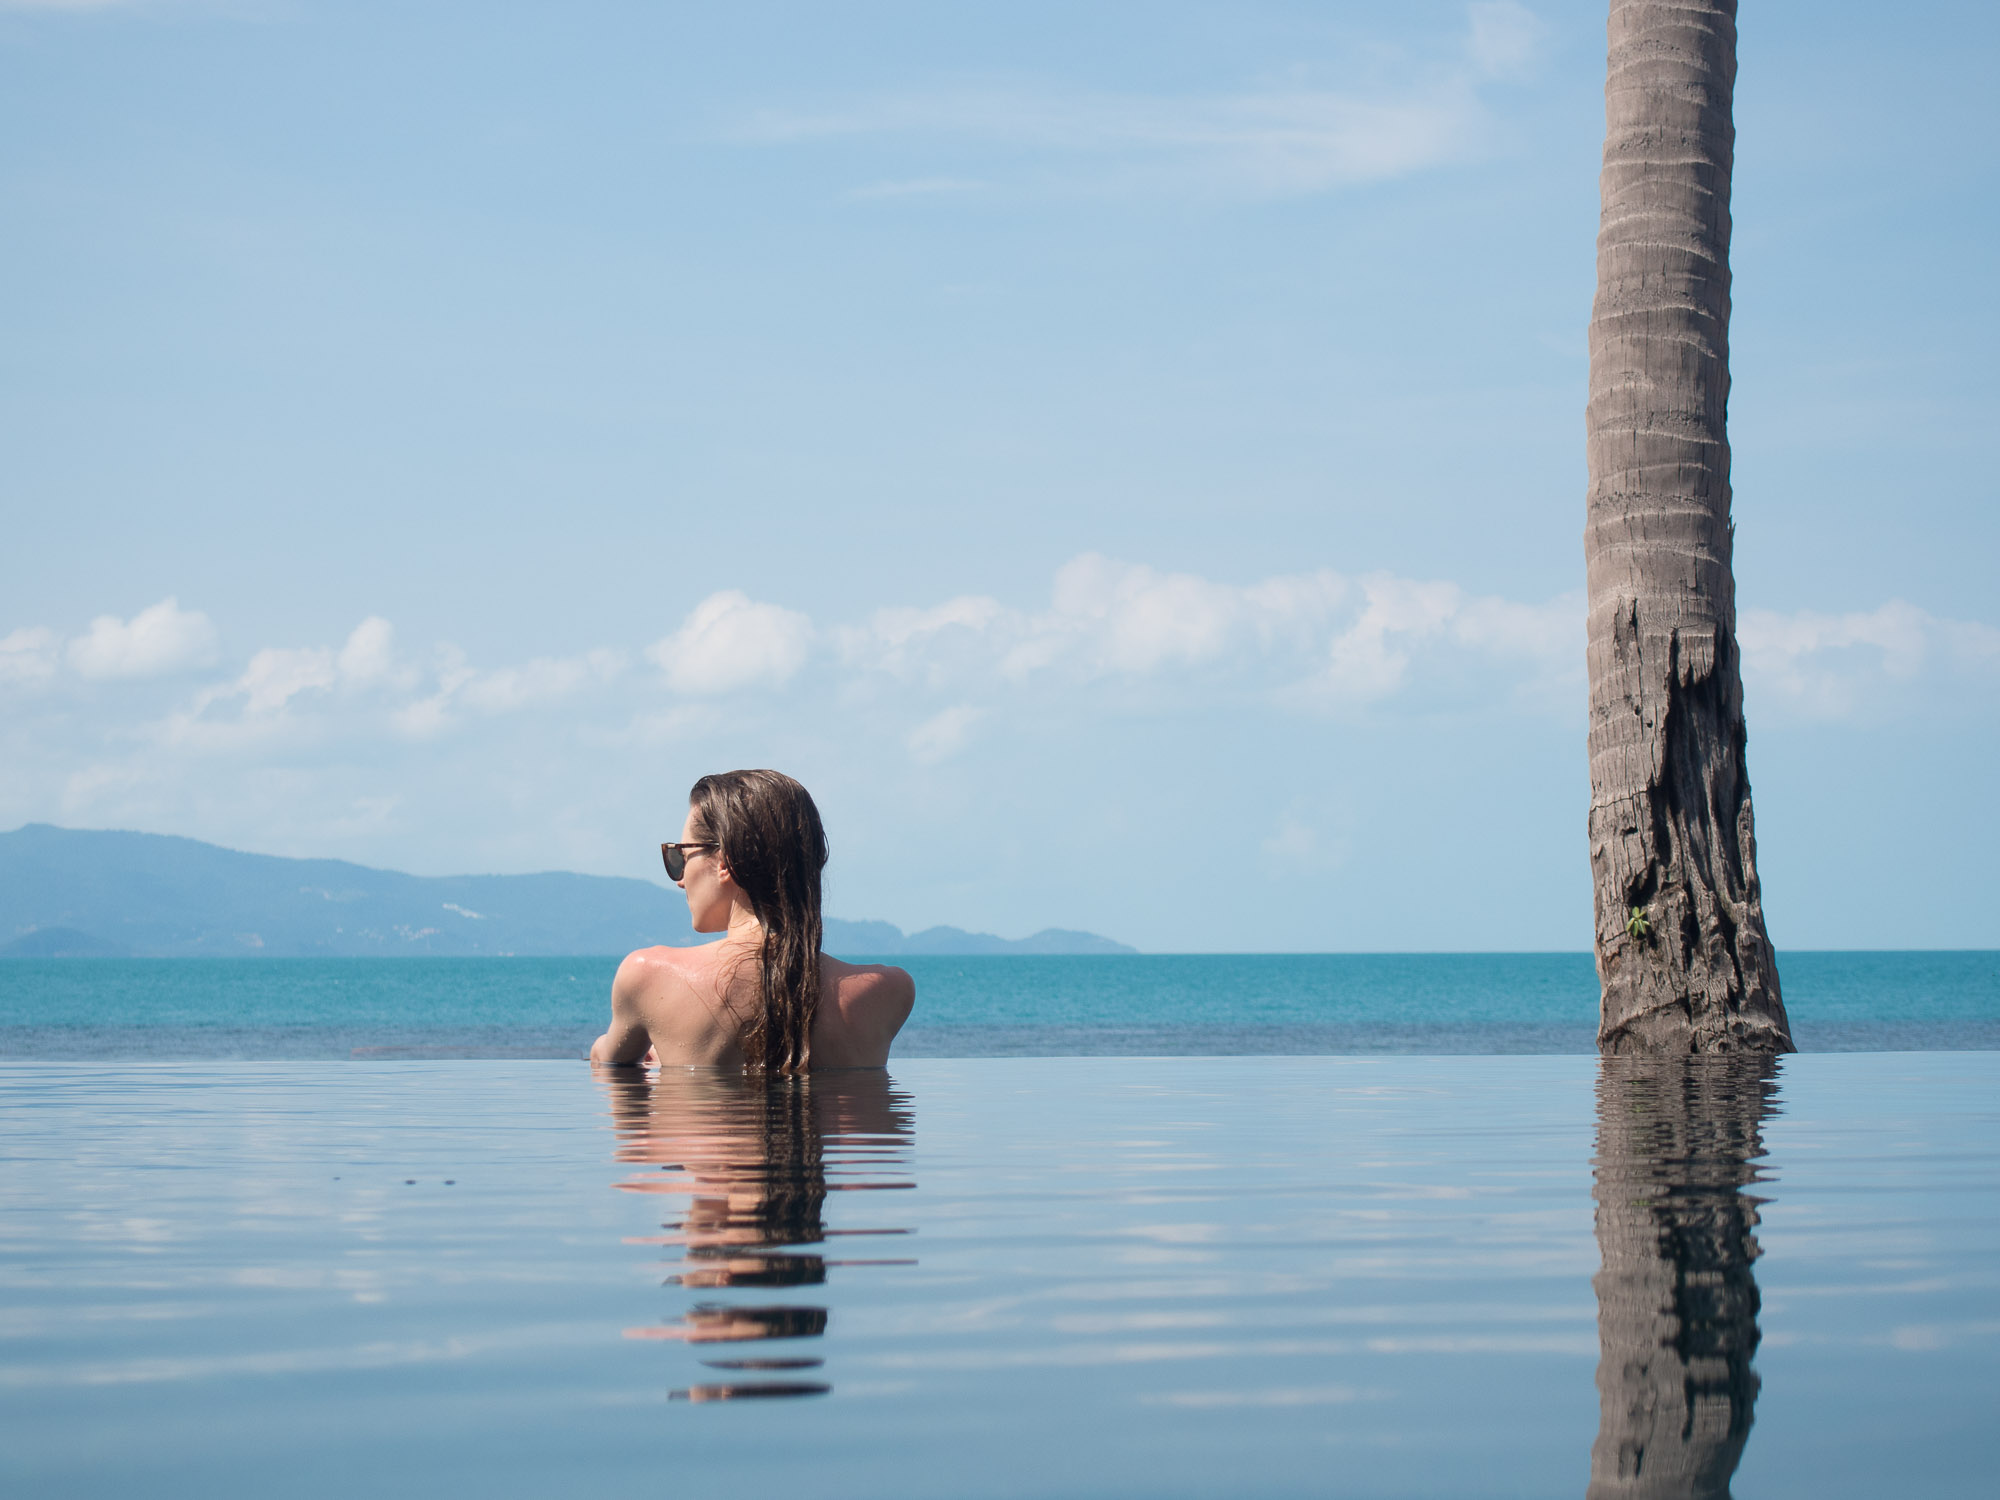 The Coast Resort Hotel Koh Phangan | Lisa Fiege